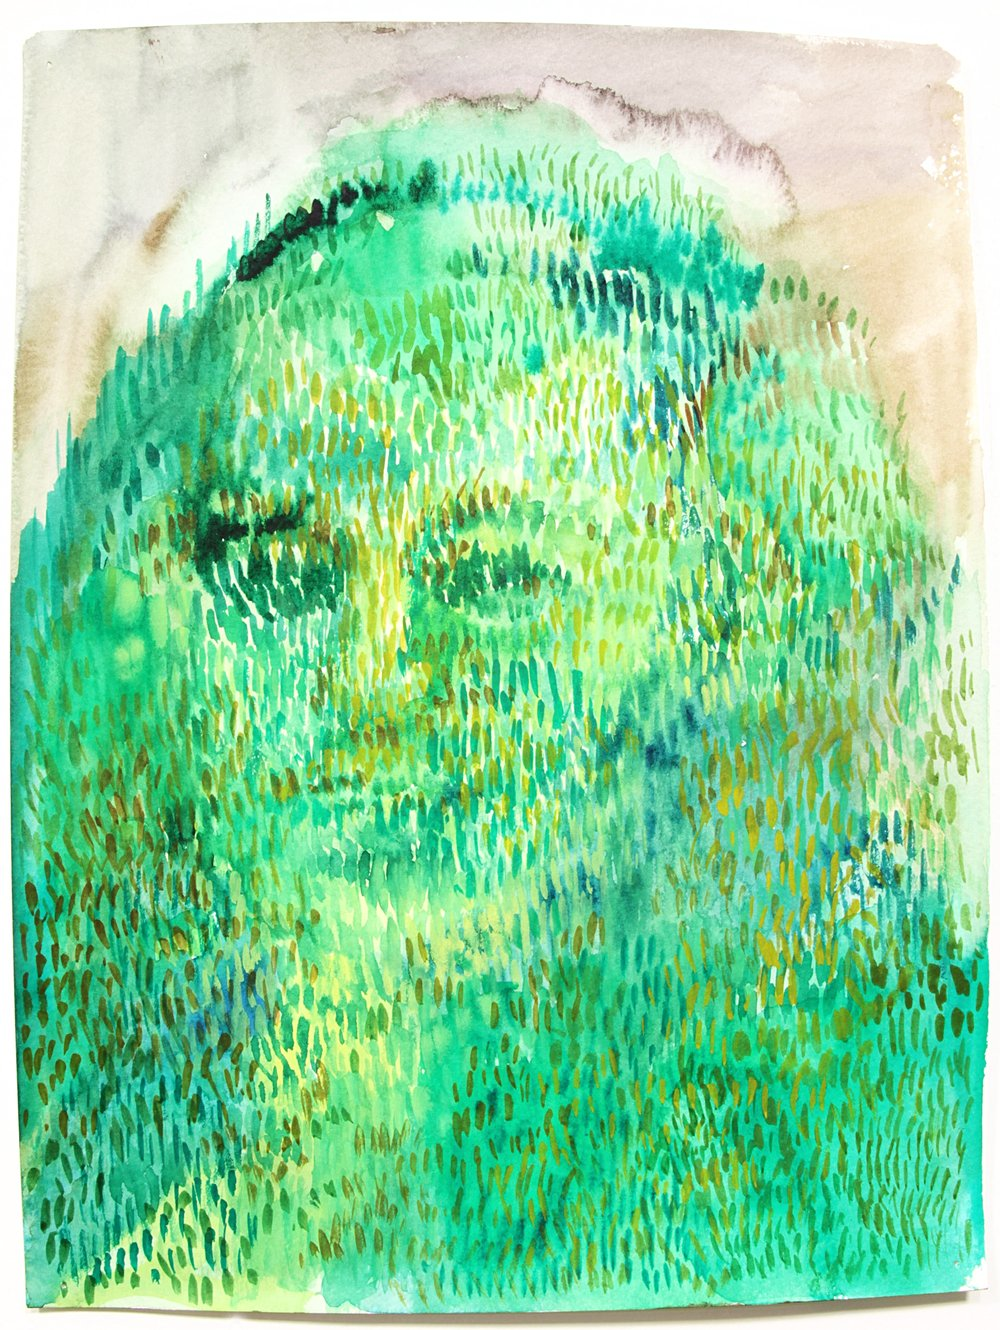 Valerie Hegarty,  George Washington Topiary , 2015, watercolor on paper